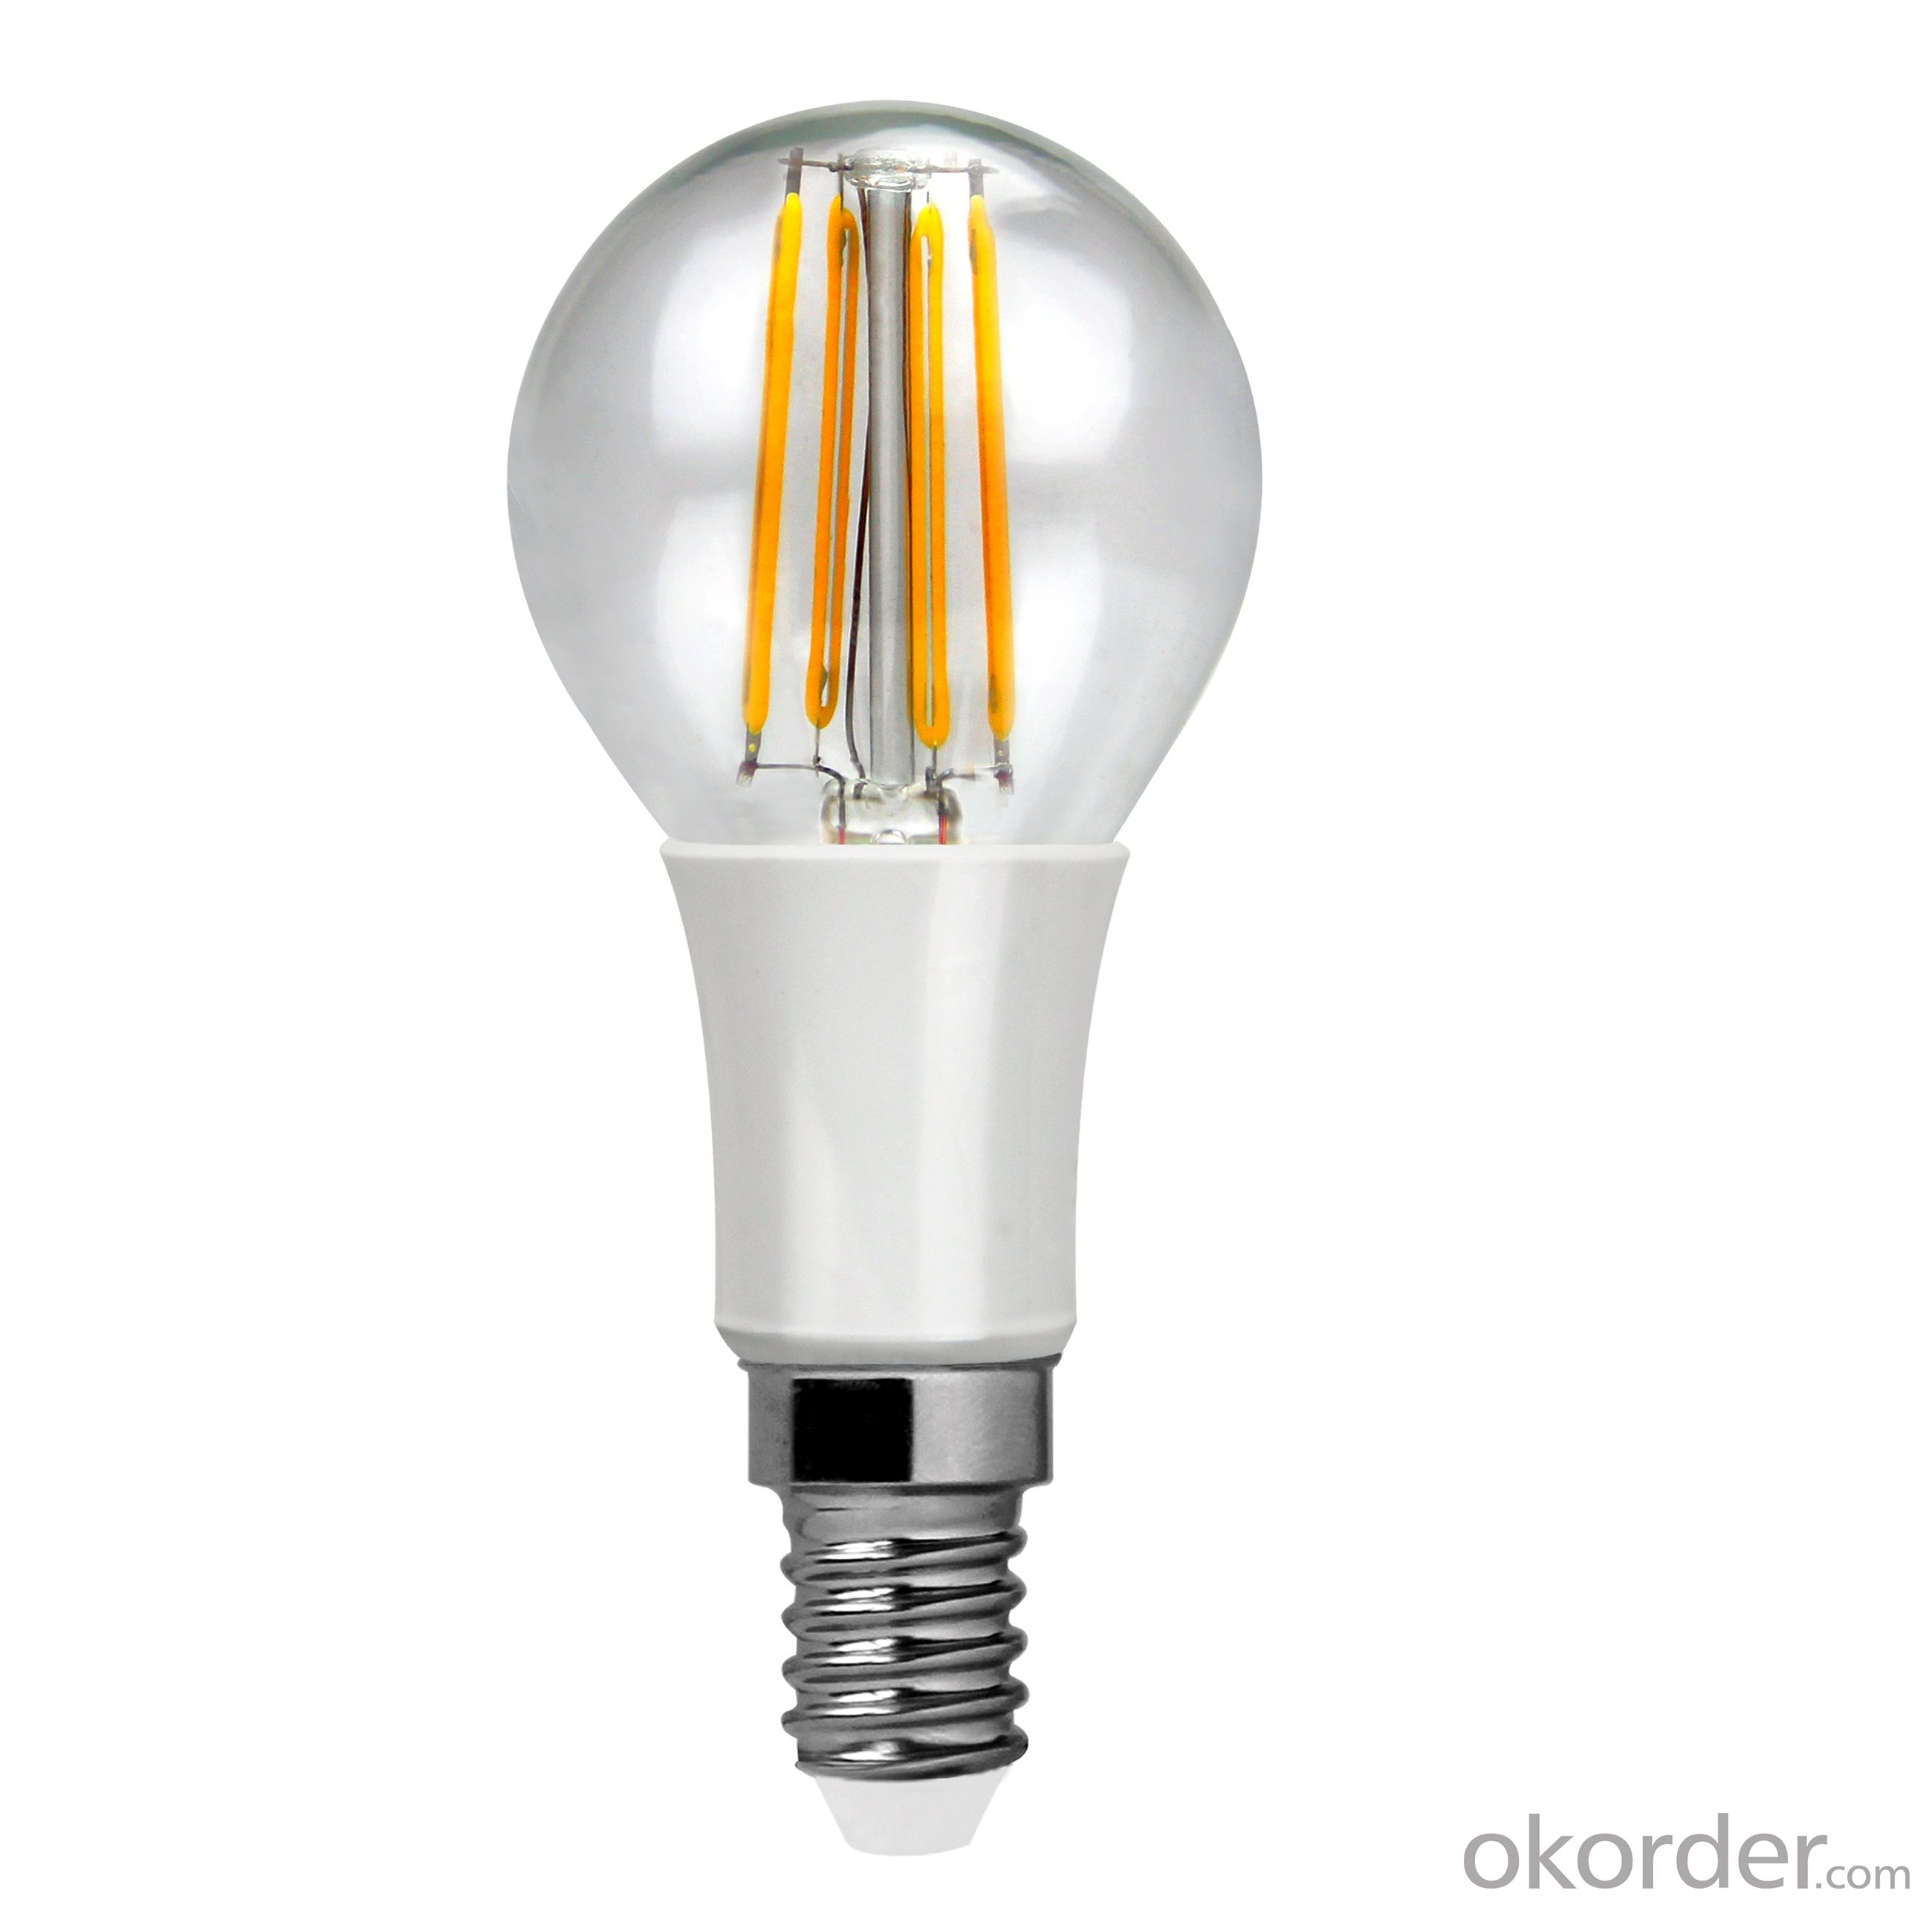 buy led filament bulb light e27 3000k 4000k 5000k 6500k b45 9w 800 lumen non dimmable price size. Black Bedroom Furniture Sets. Home Design Ideas